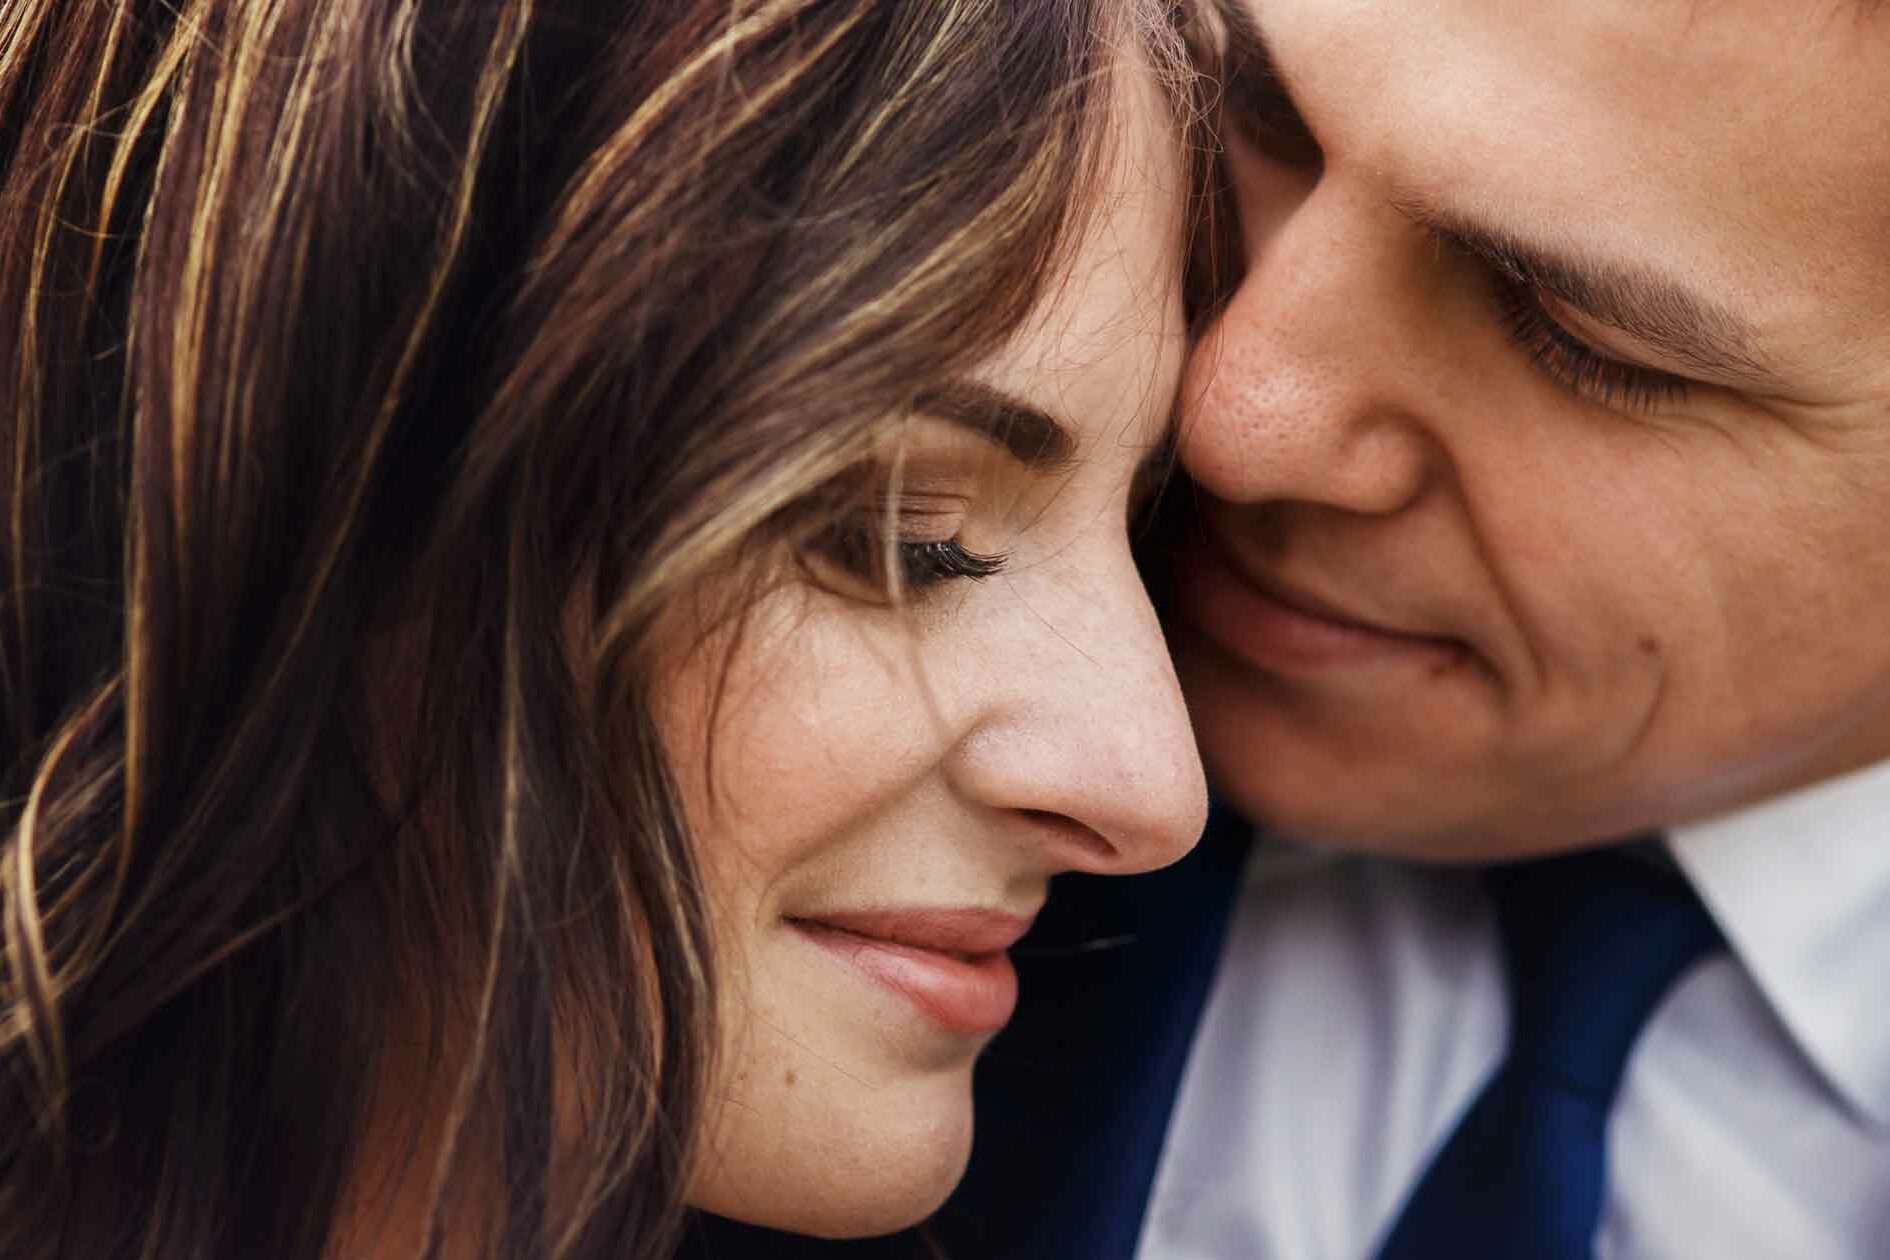 Man in Suit Cuddles Woman - Keep romance Alive